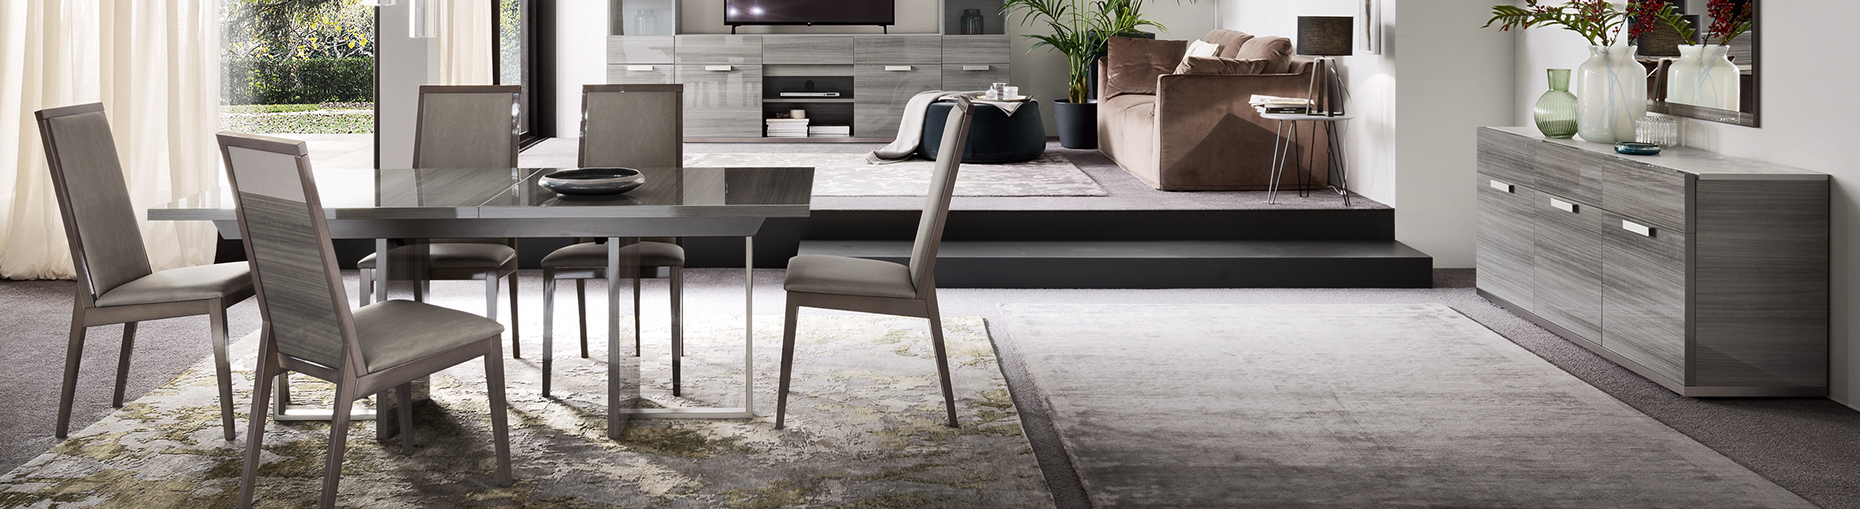 Ferrara dining collection at Forrest Furnishing